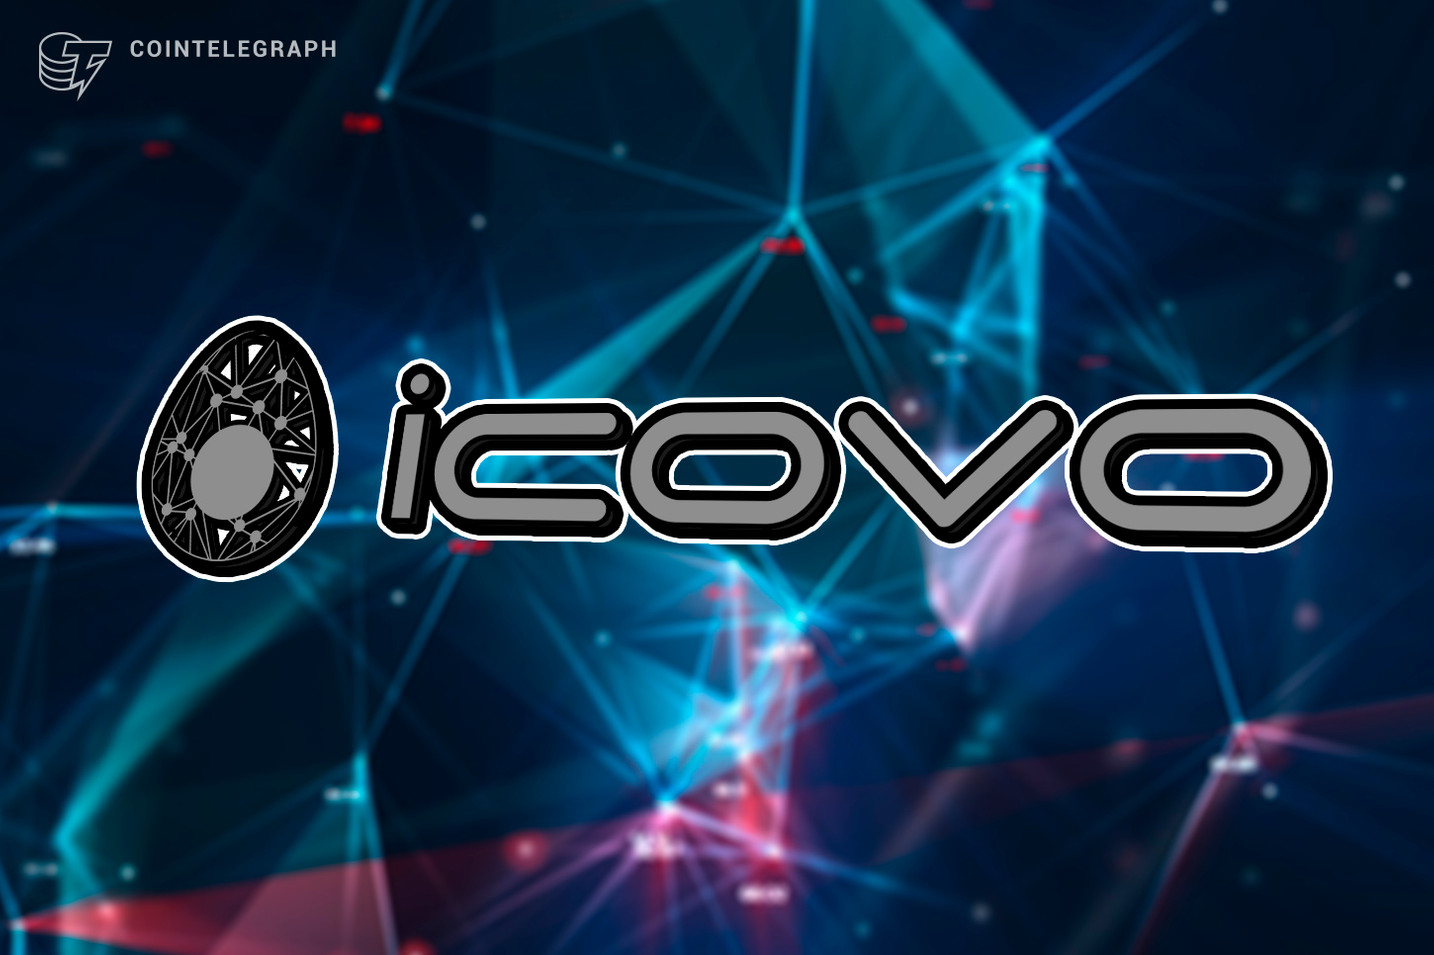 ICOVO Releases the World's First Wallet Implementing DAICO-ICOVO App